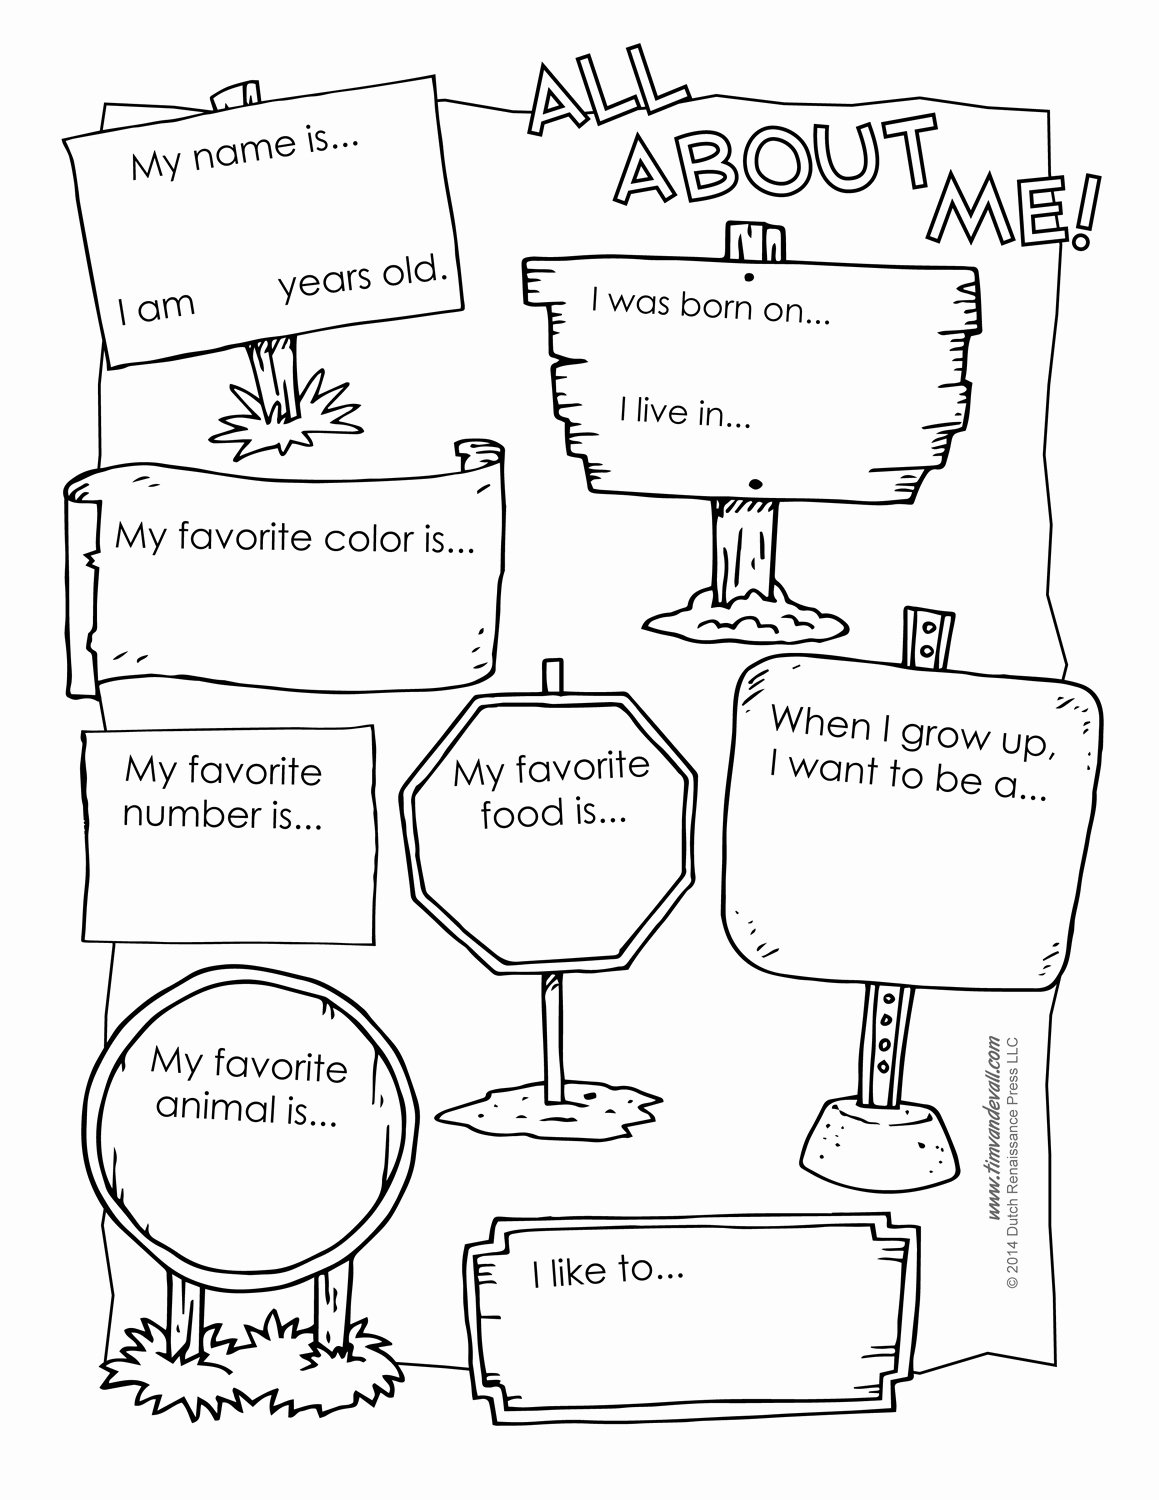 Printable All About Me Poster & All About Me Template Pdf